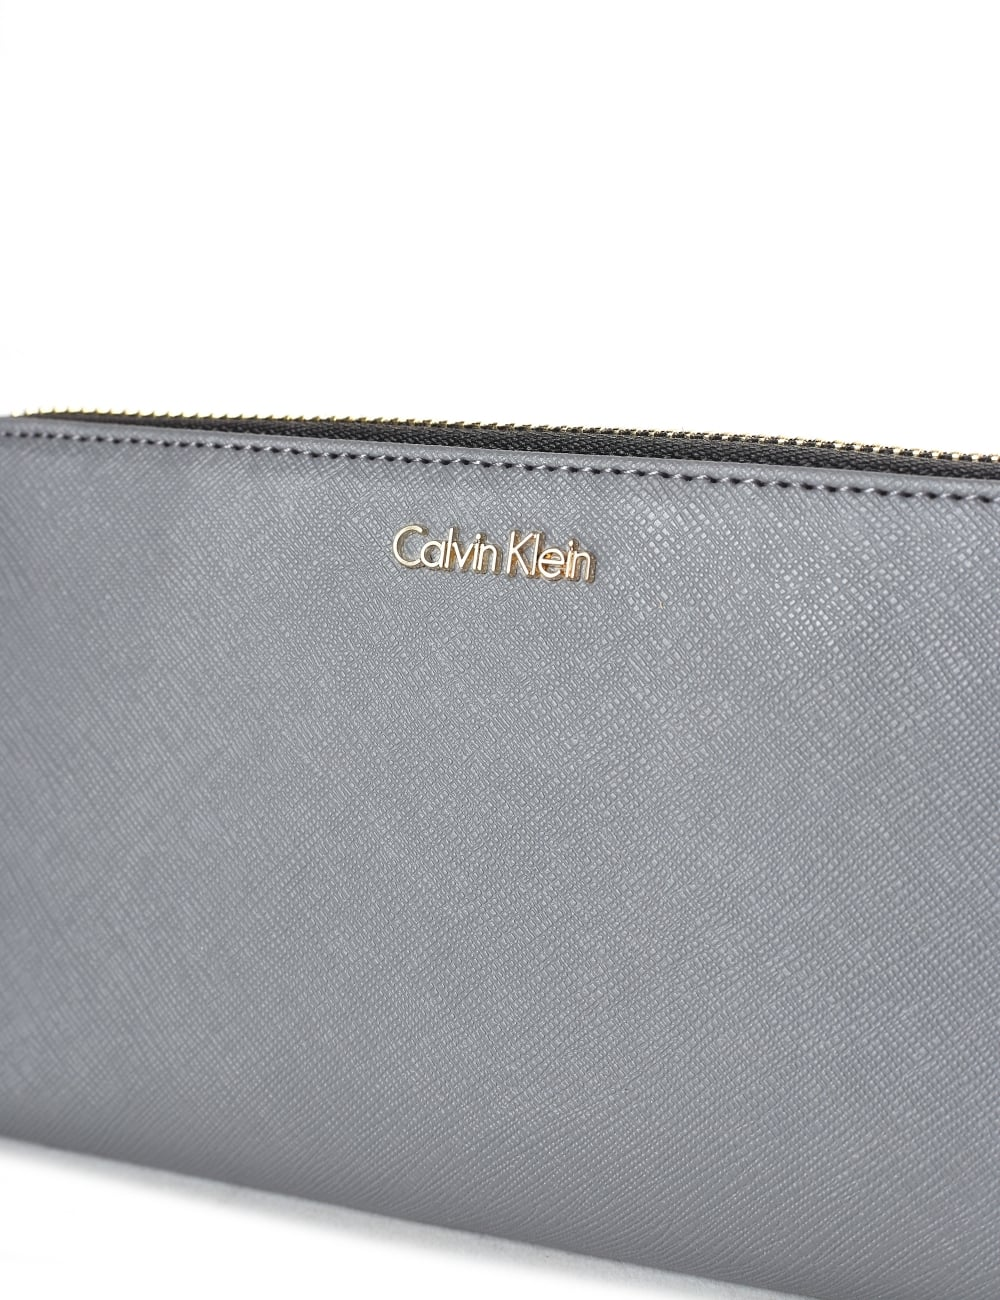 NEW CALVIN KLEIN LARGE Women  s Belt Brown Synth. Leather LOGO CK ... b923f15a8a7